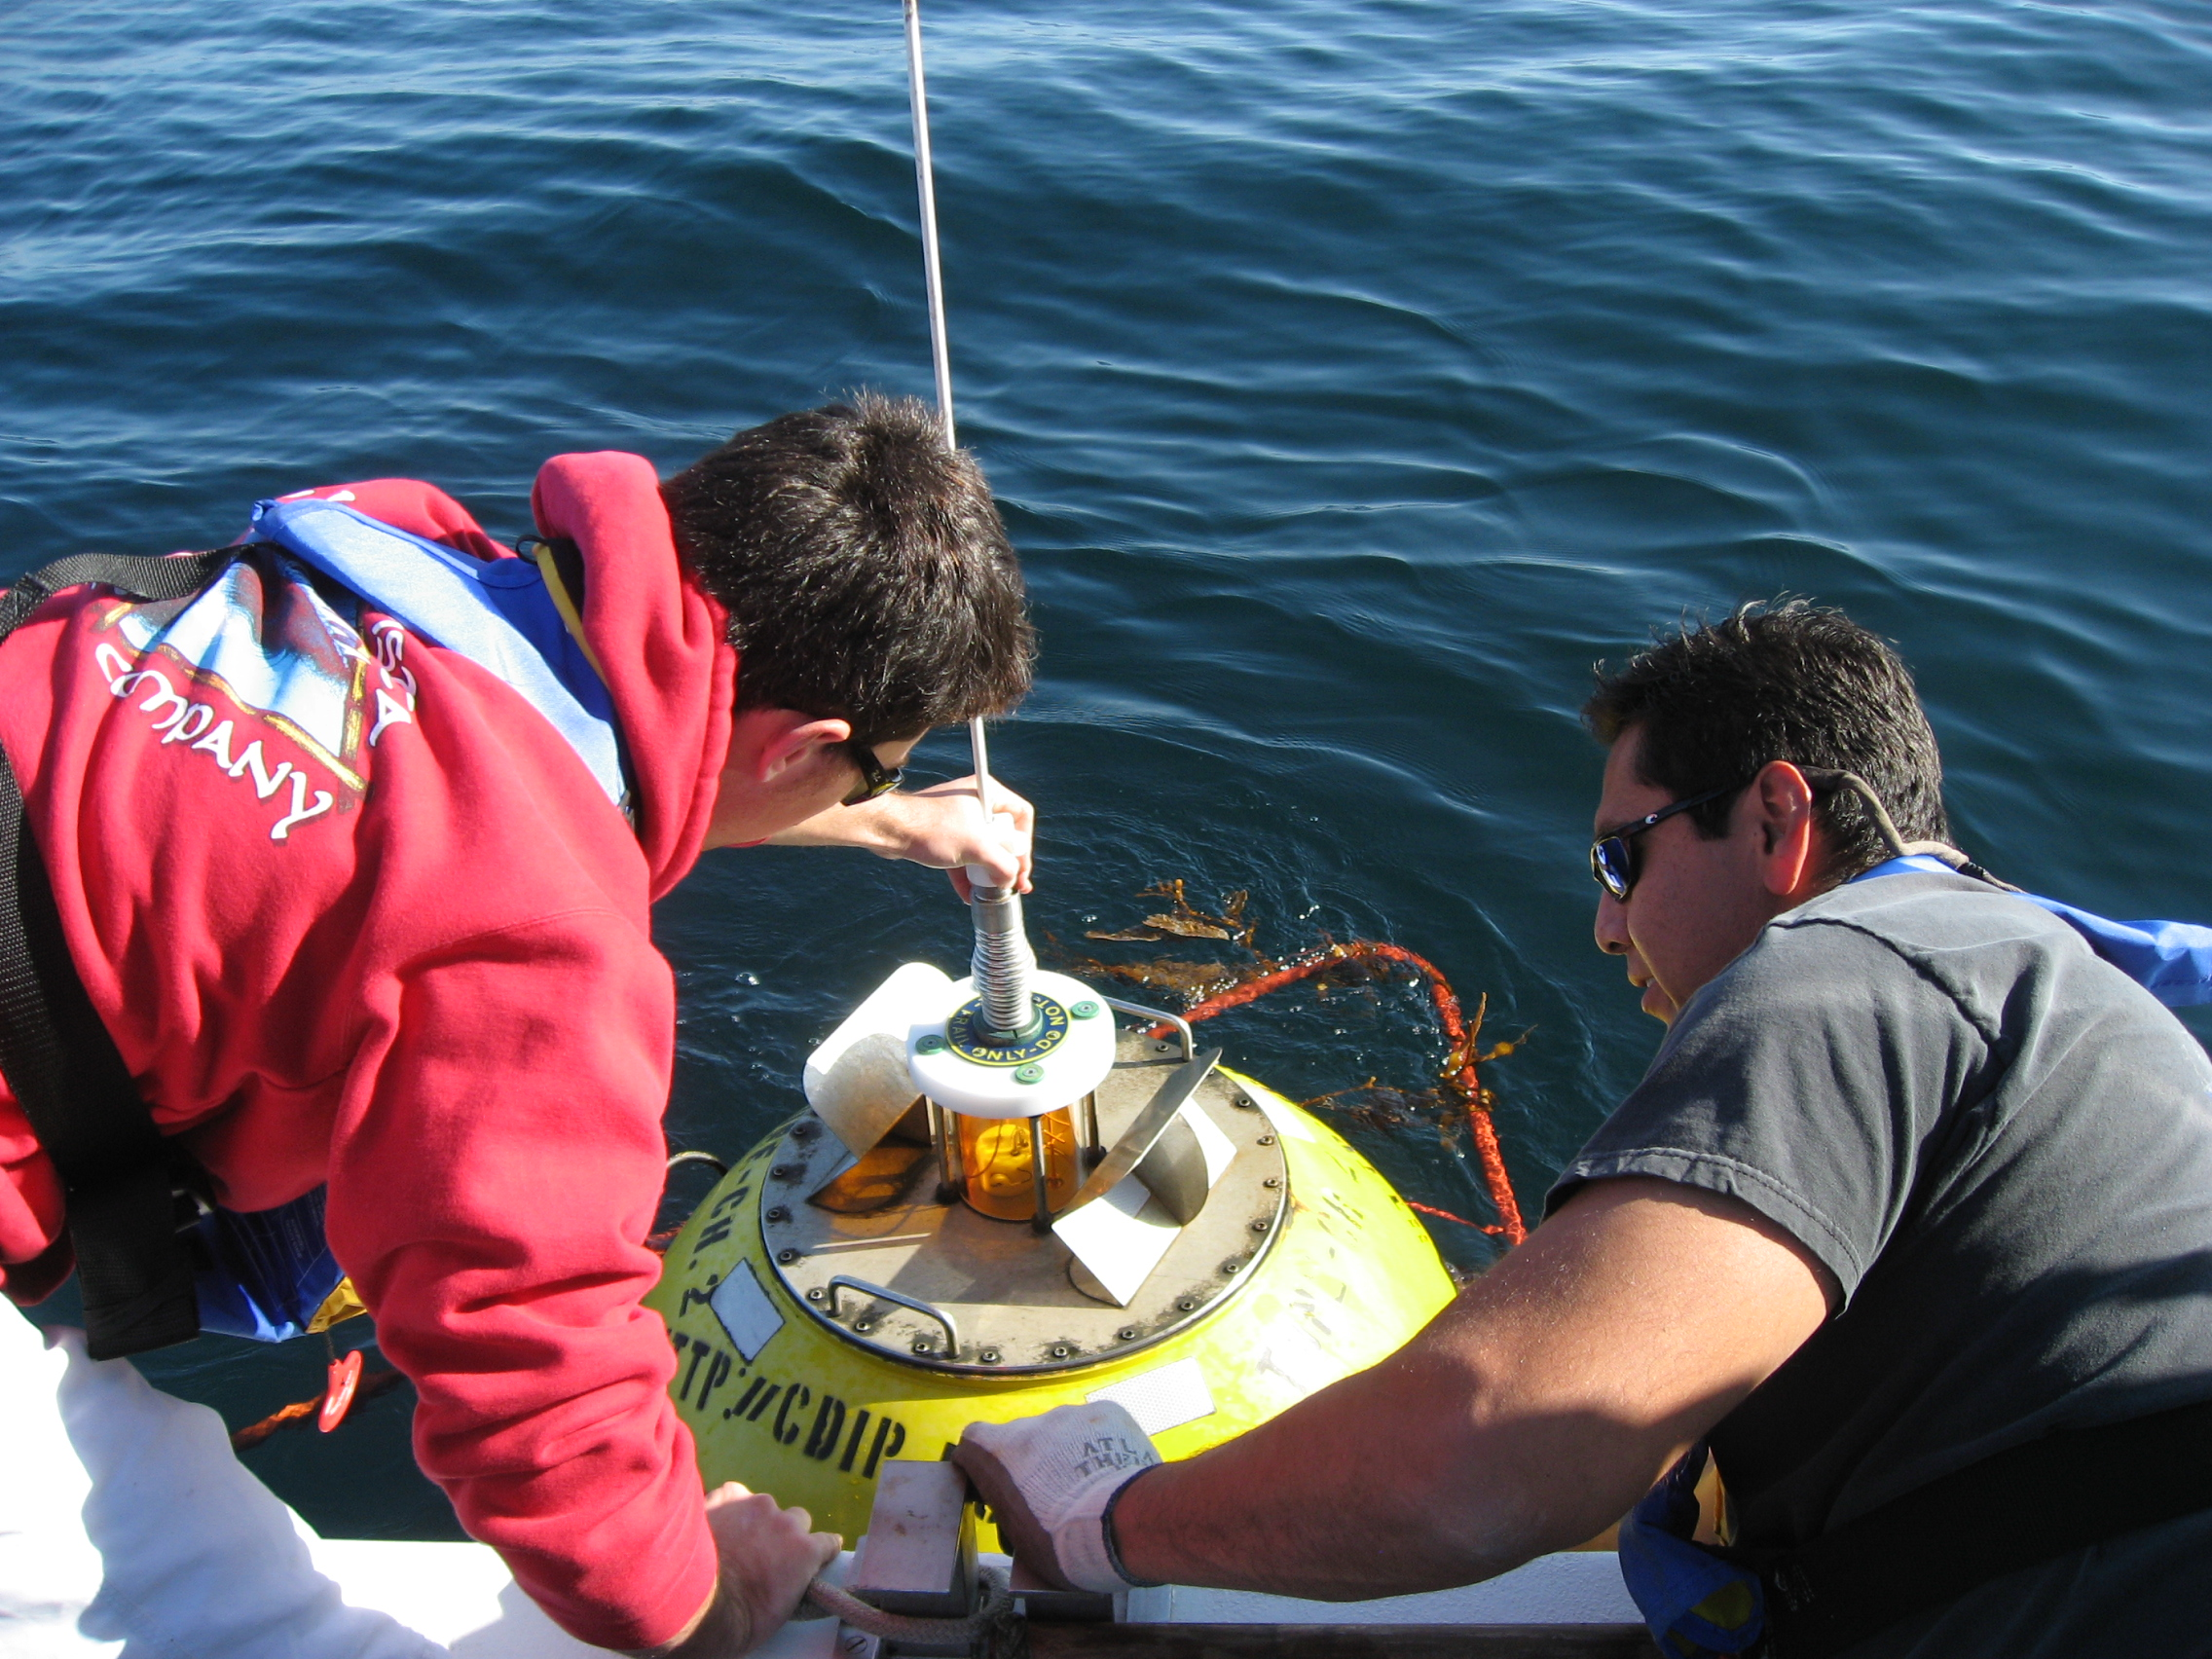 Victor holds old buoy while Andy unscrews antenna